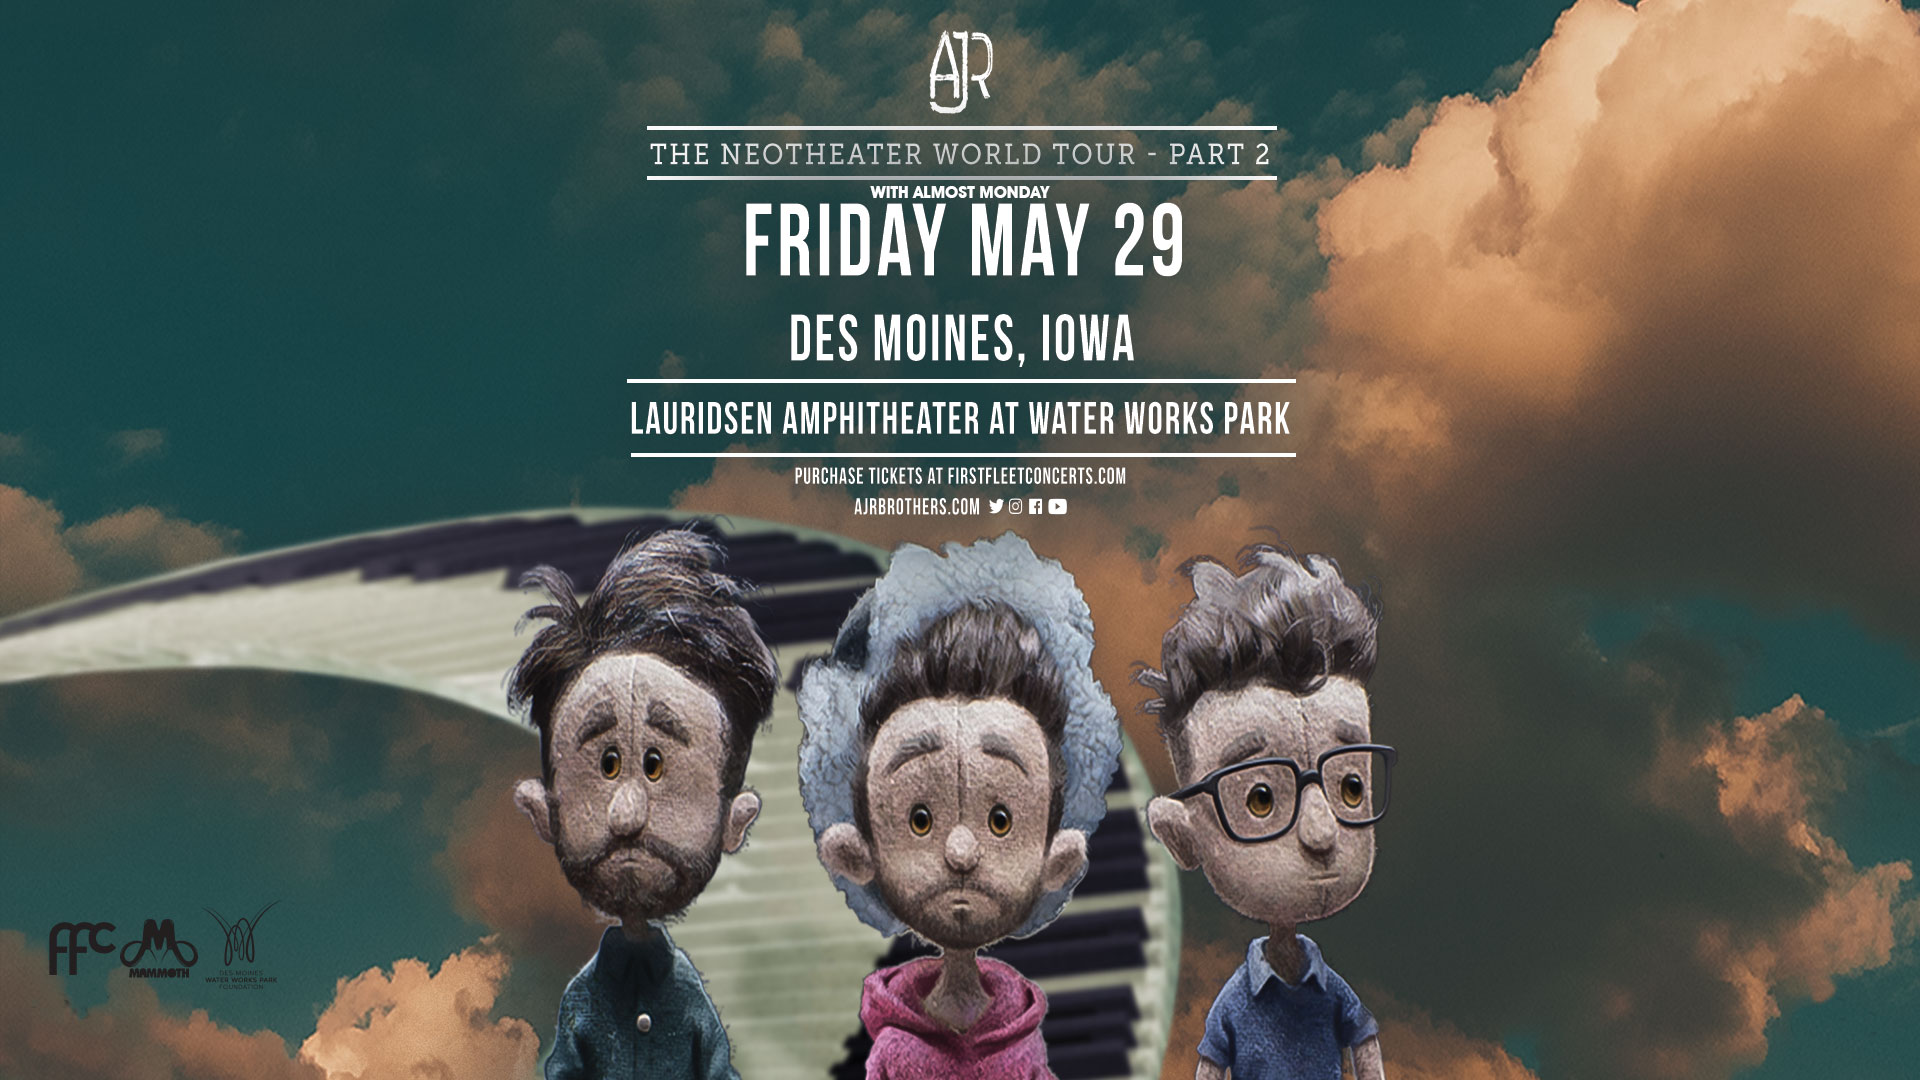 AJR: The Neotheater World Tour – Part 2 with almost monday